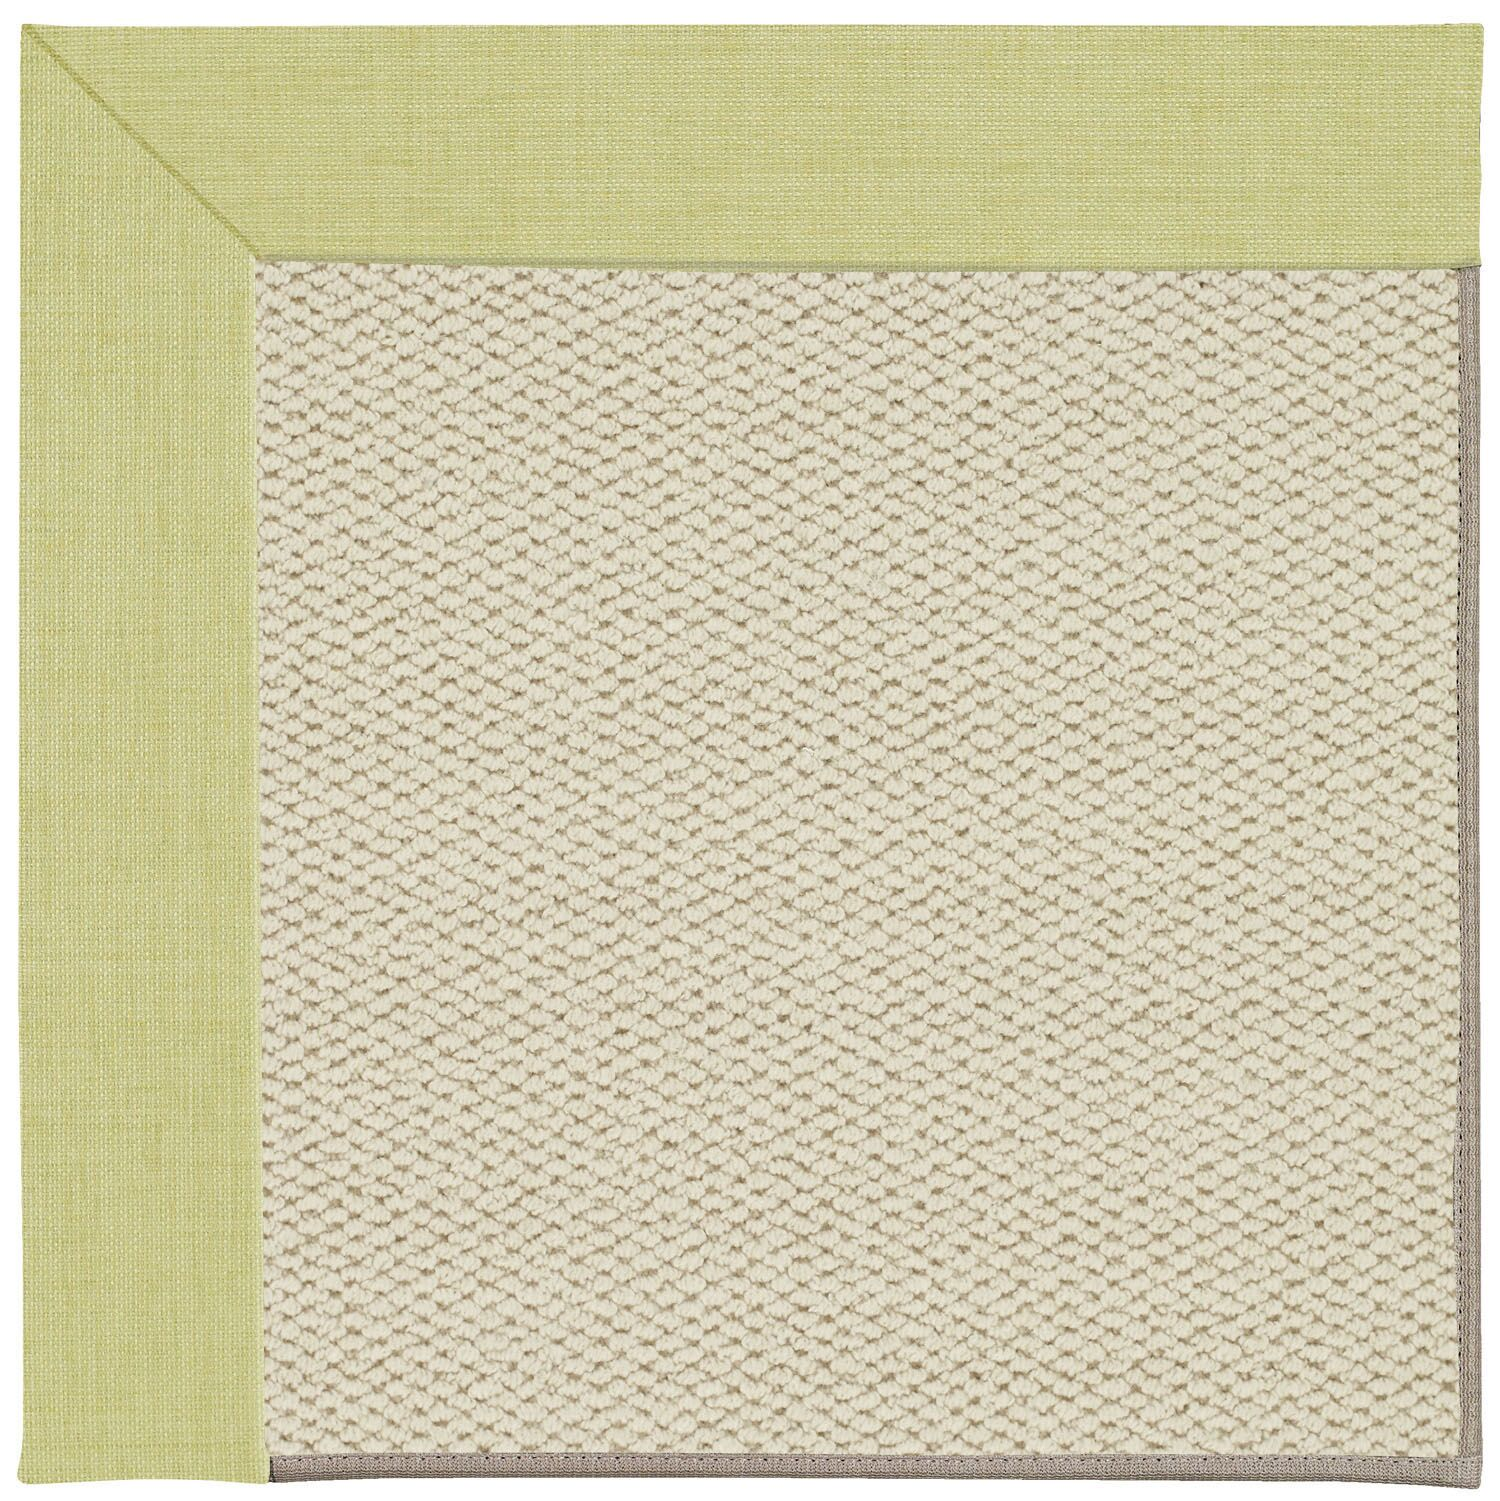 Barrett Linen Machine Tufted Light Green/Beige Area Rug Rug Size: Square 10'